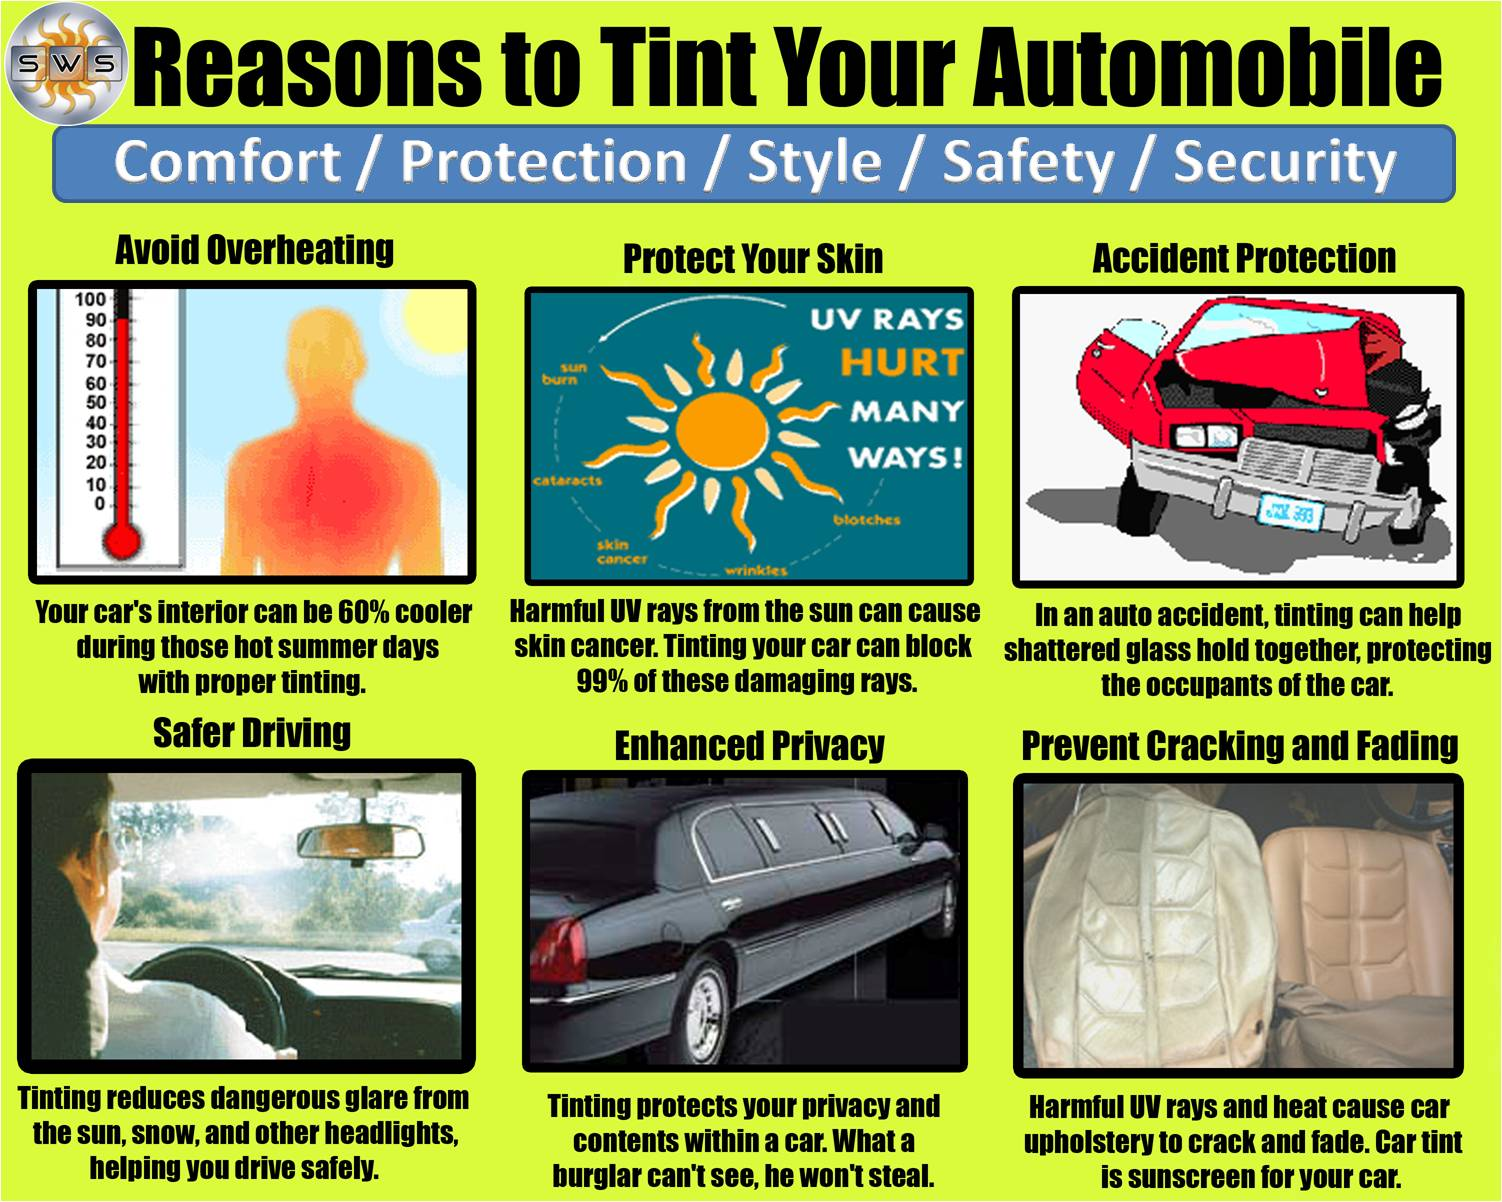 6 reasons to tint your car.jpg